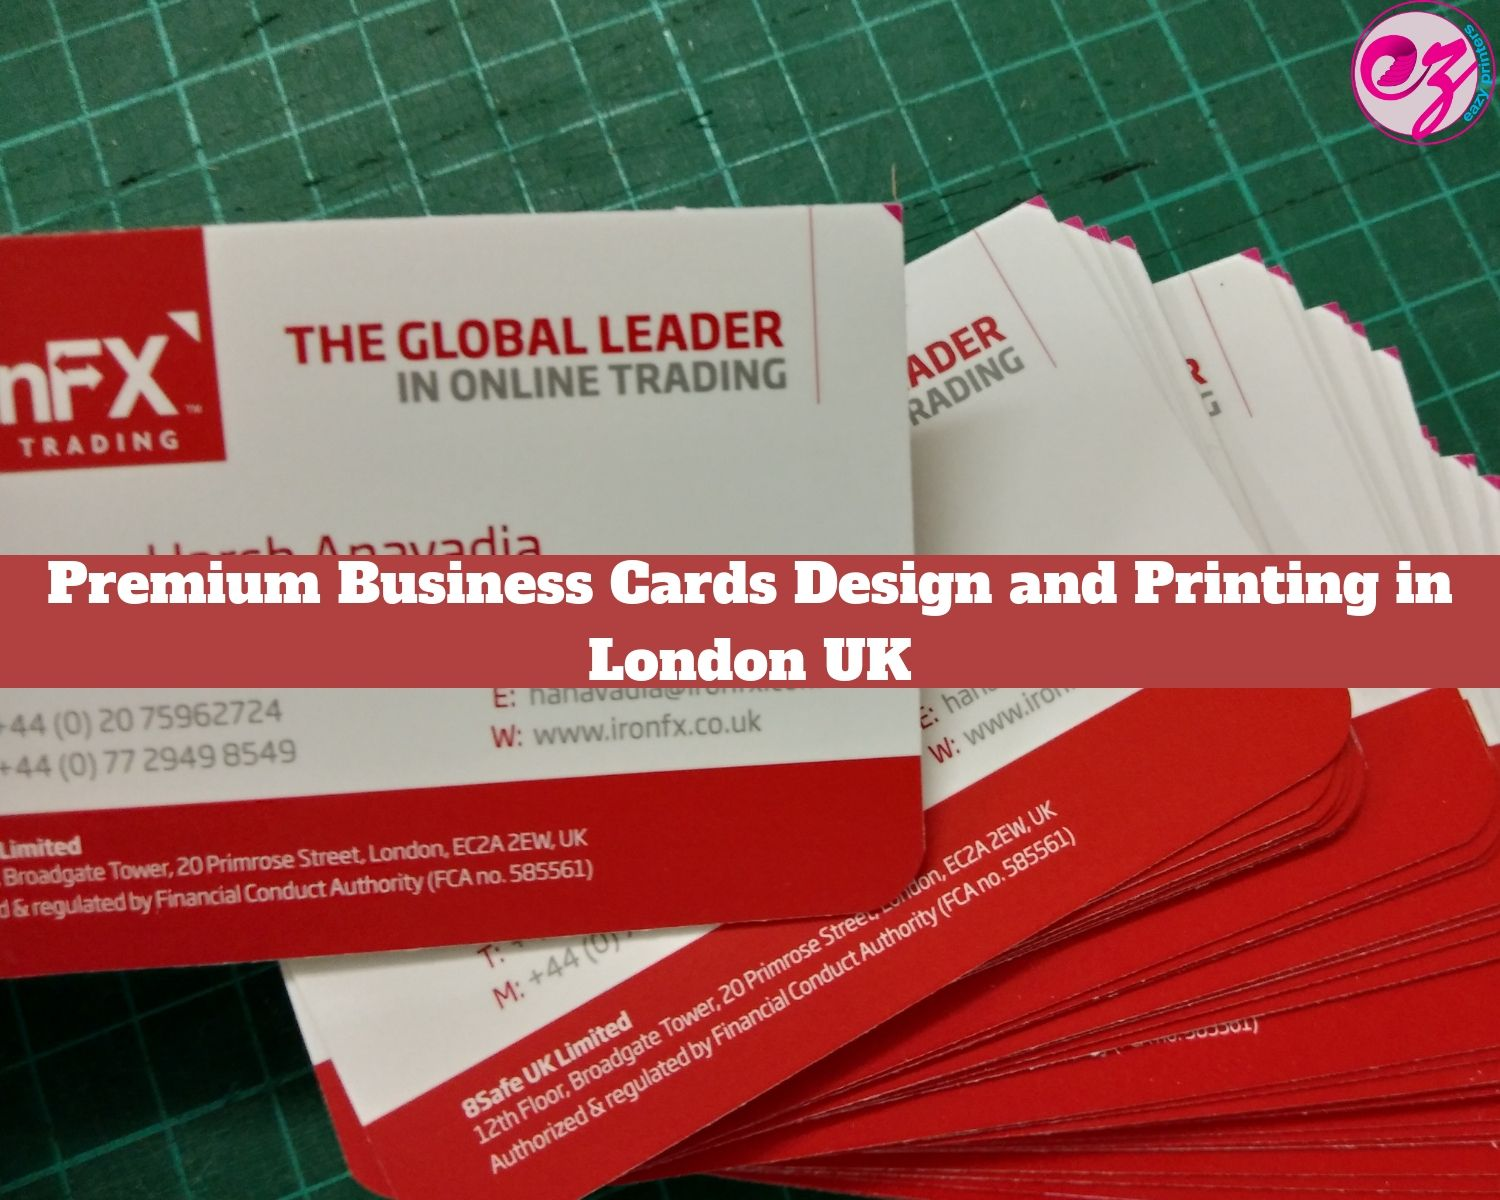 Premium Business Cards Design And Printing In London Uk Business Card Design Premium Business Cards Double Sided Business Cards